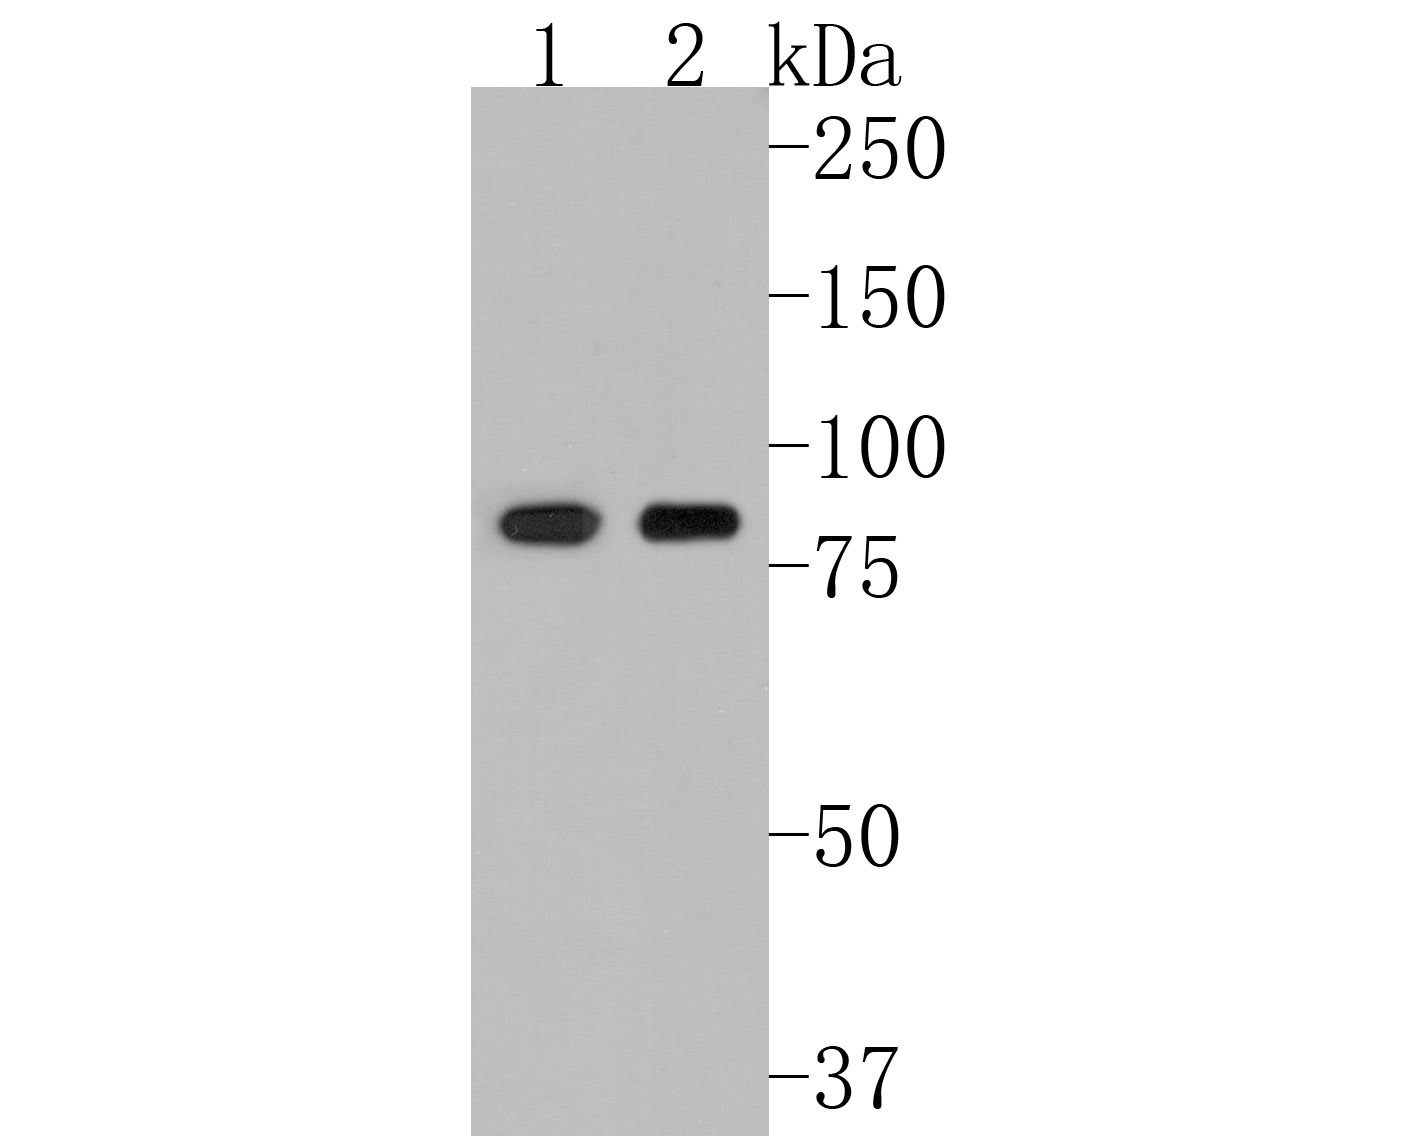 Western blot analysis of Fructose 6 Phosphate Kinase on PC-3M cell lysate using anti-Fructose 6 Phosphate Kinase antibody at 1/500 dilution.